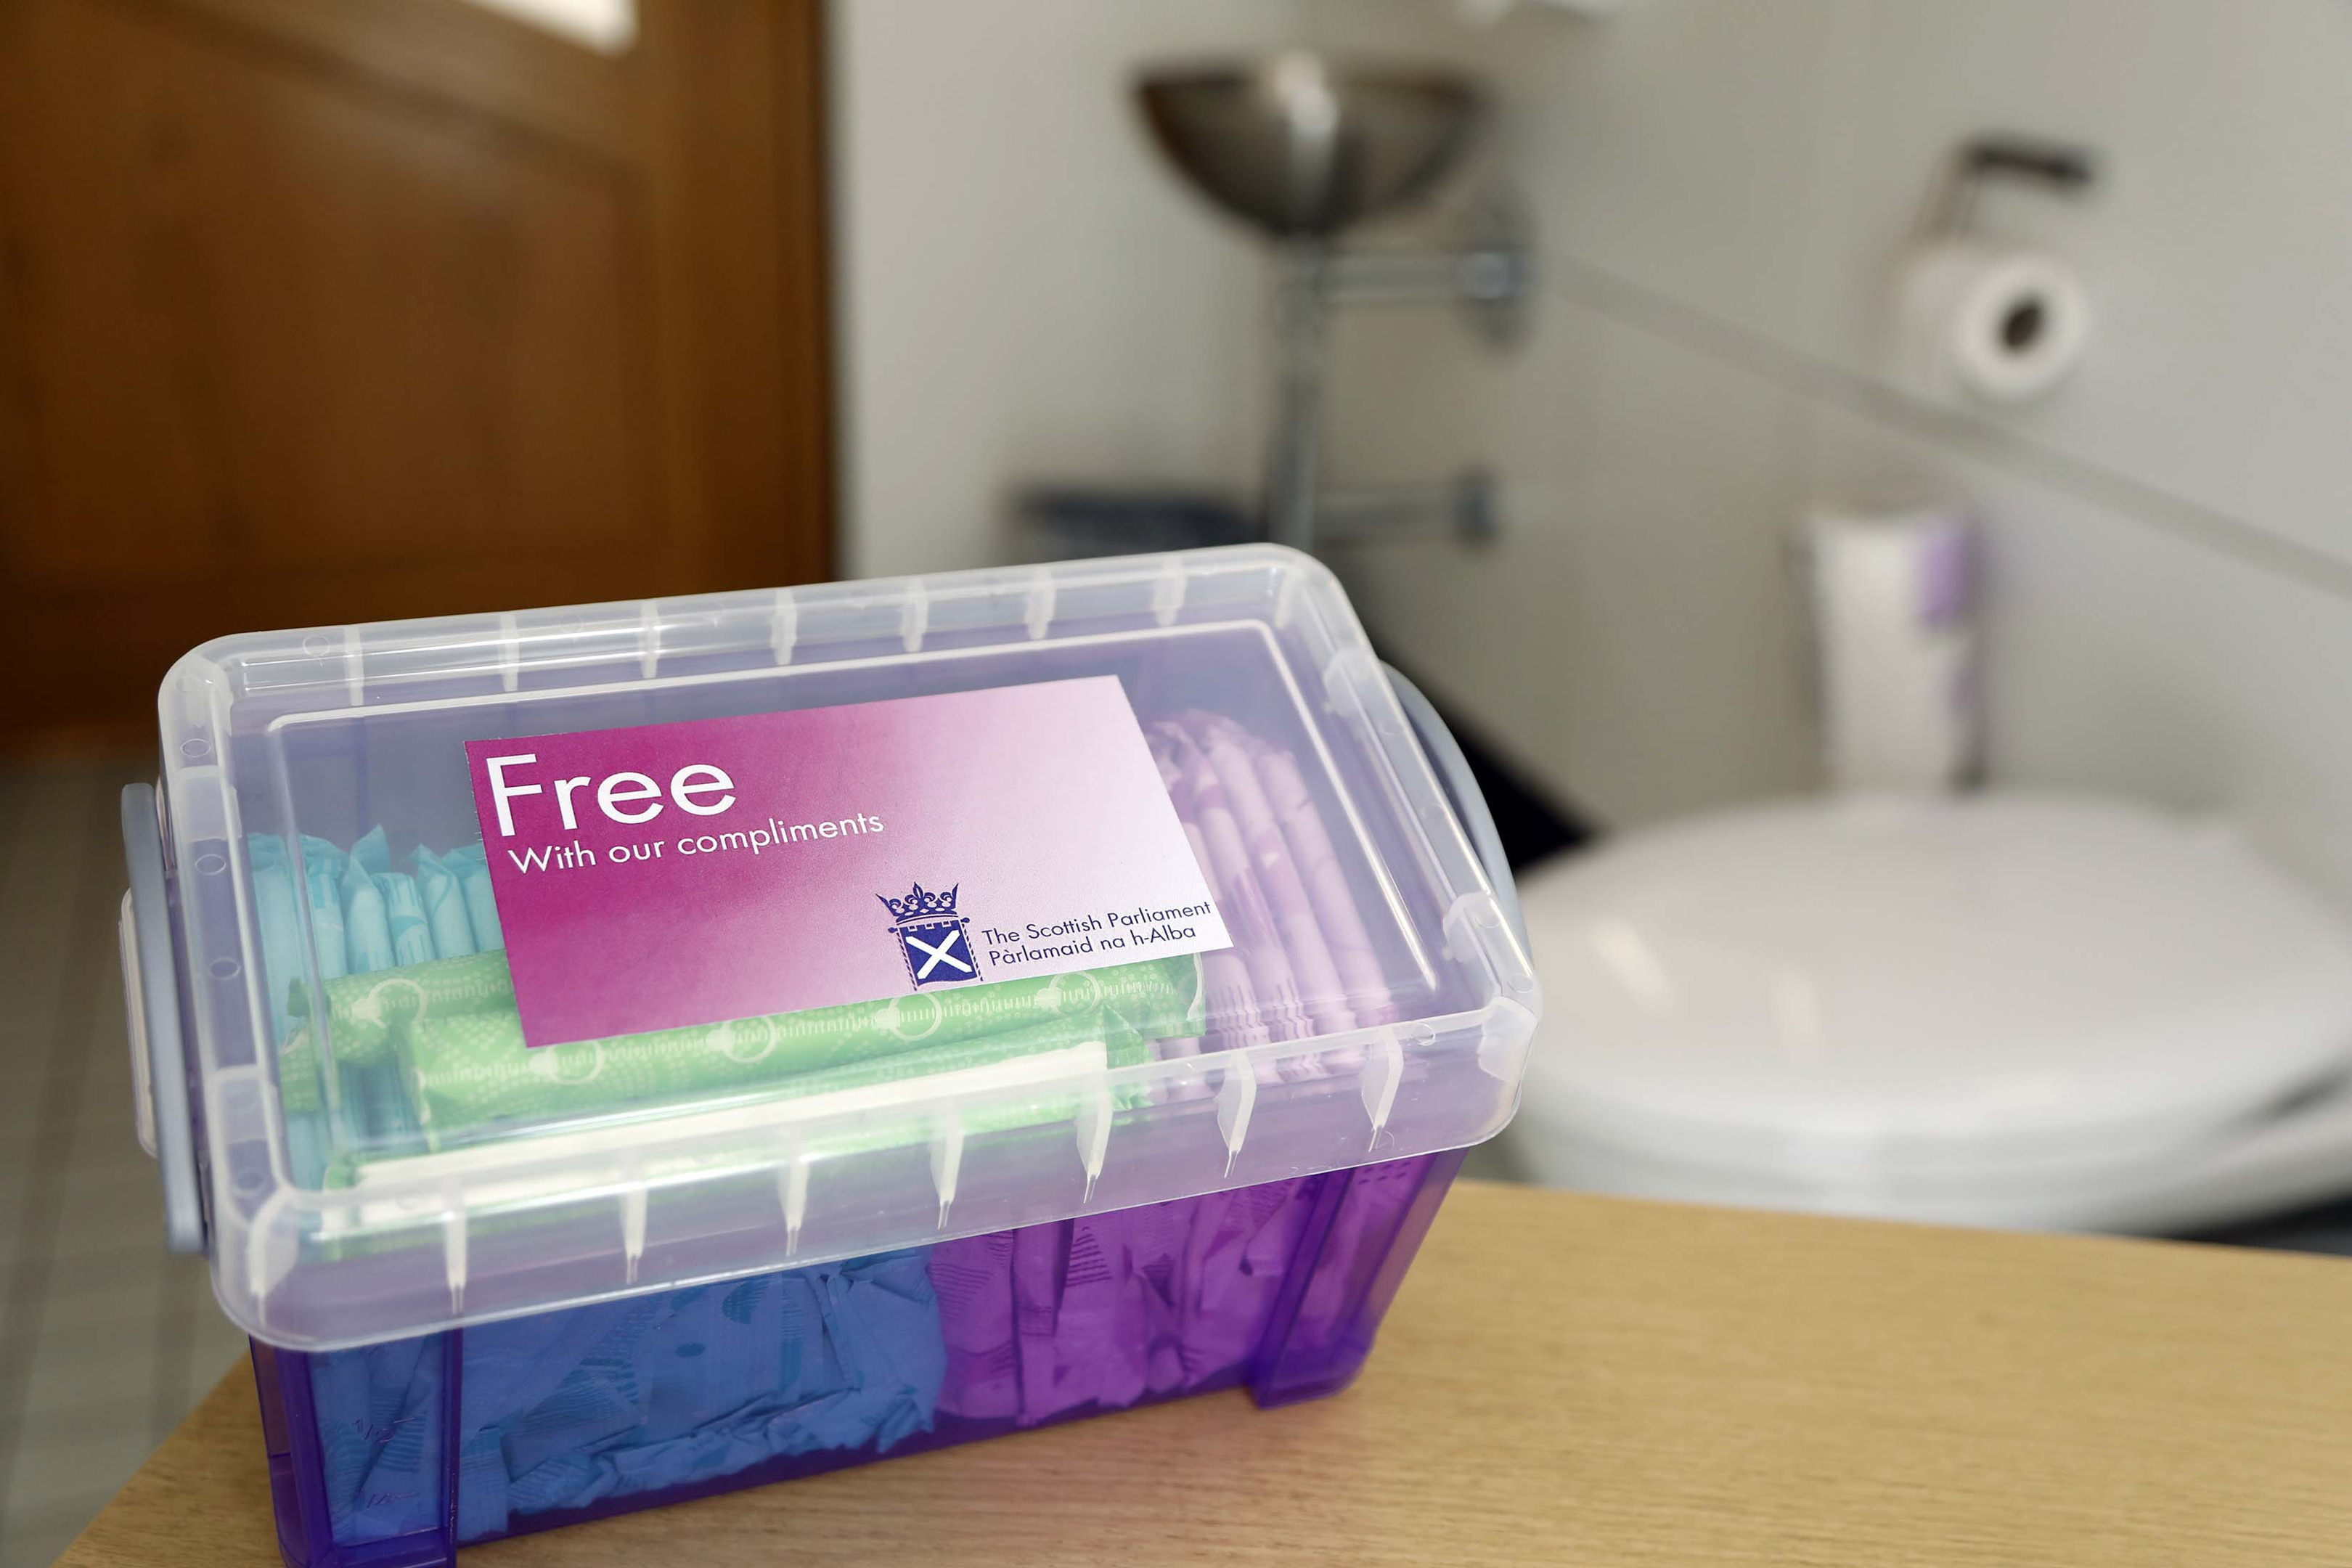 Free sanitary products at Holyrood